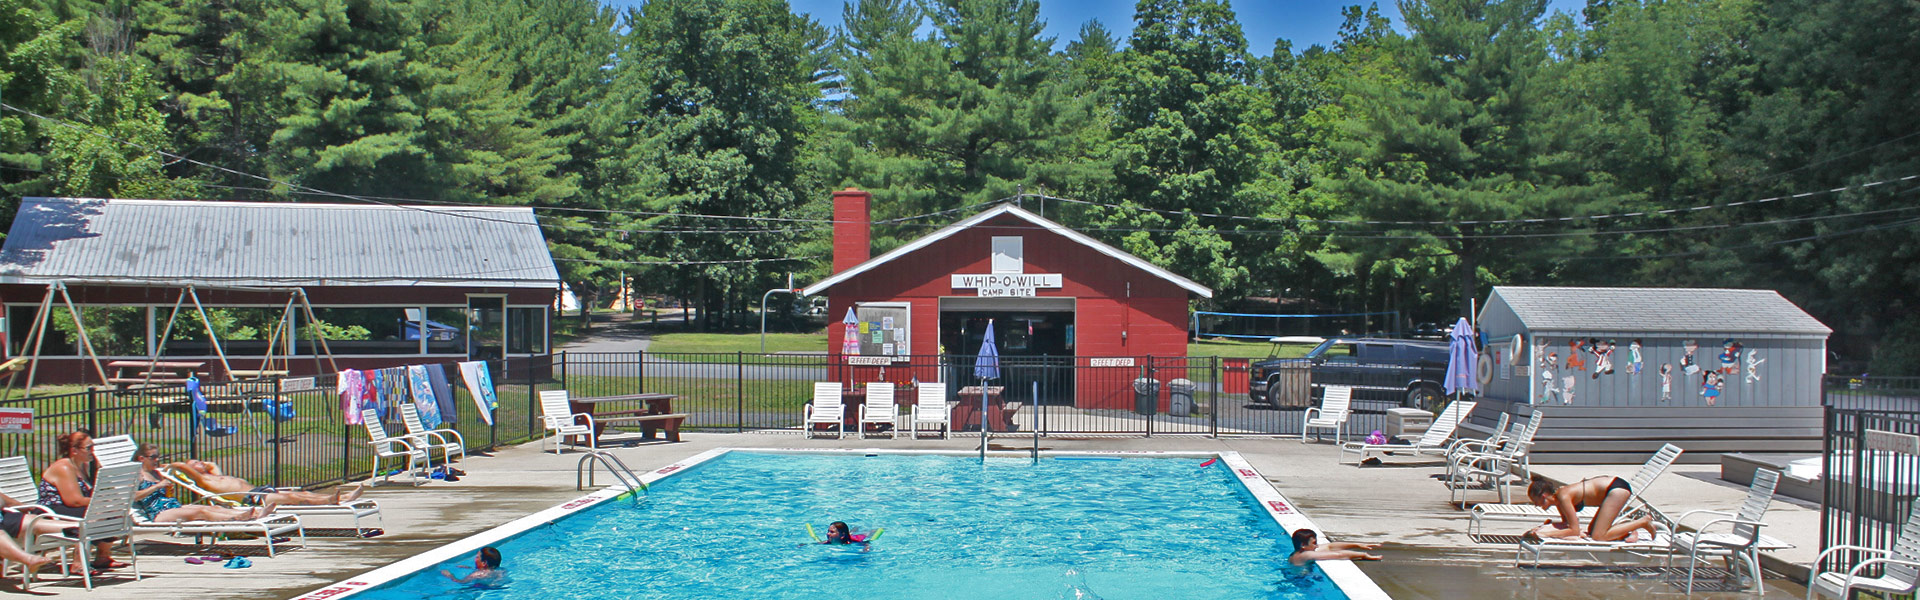 Whip O Will Campsites New York Camping In The Northern Catskill Mountains